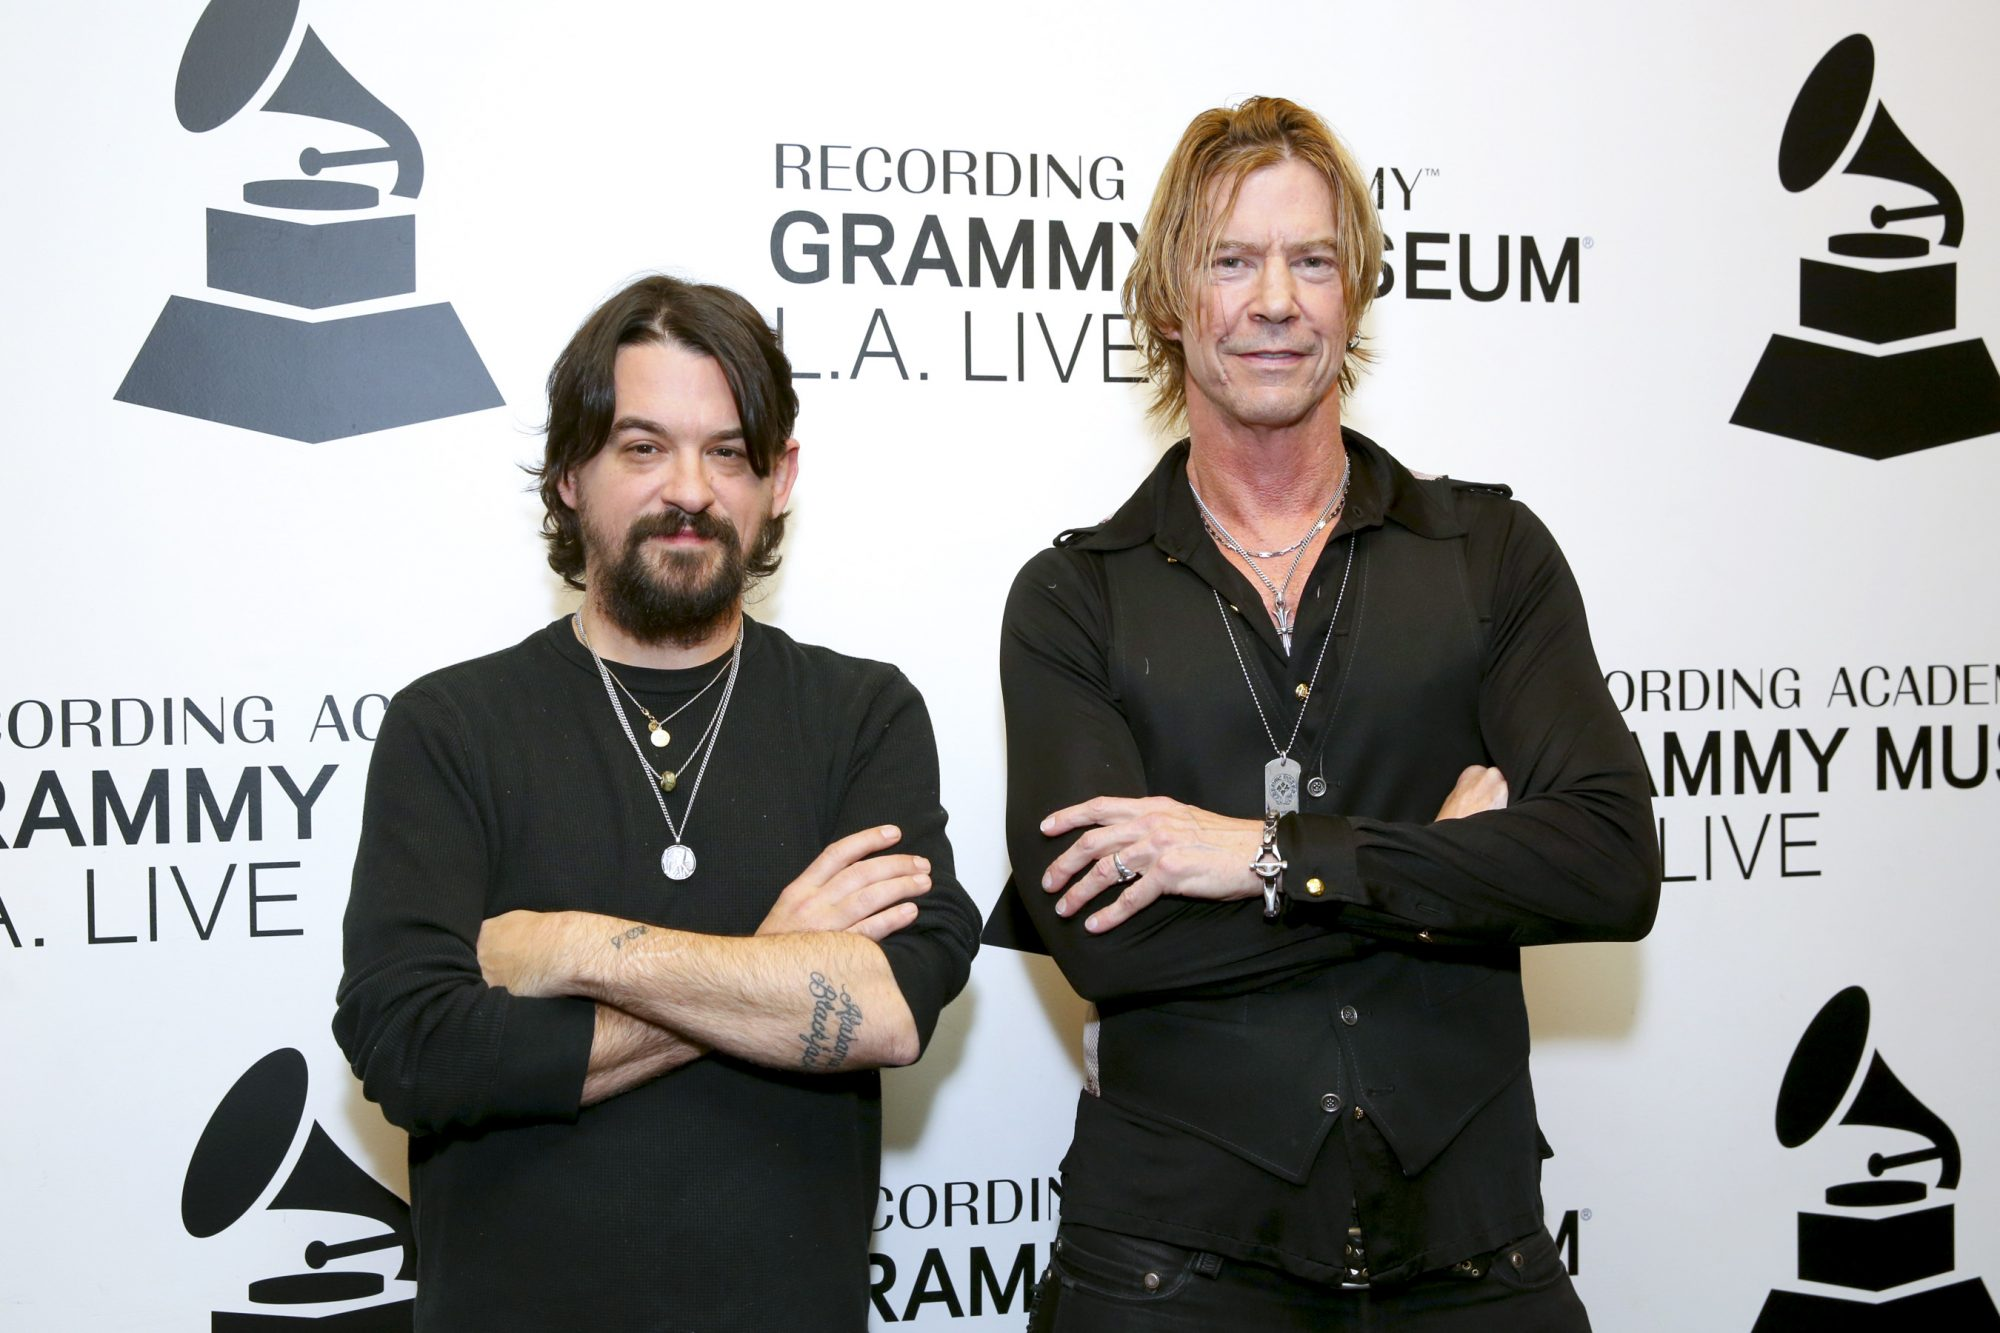 LOS ANGELES, CALIFORNIA - APRIL 04: Shooter Jennings and Duff McKagan attend The Drop: Duff McKagan & Shooter Jennings at The GRAMMY Museum on April 04, 2019 in Los Angeles, California. (Photo by Rebecca Sapp/WireImage,)